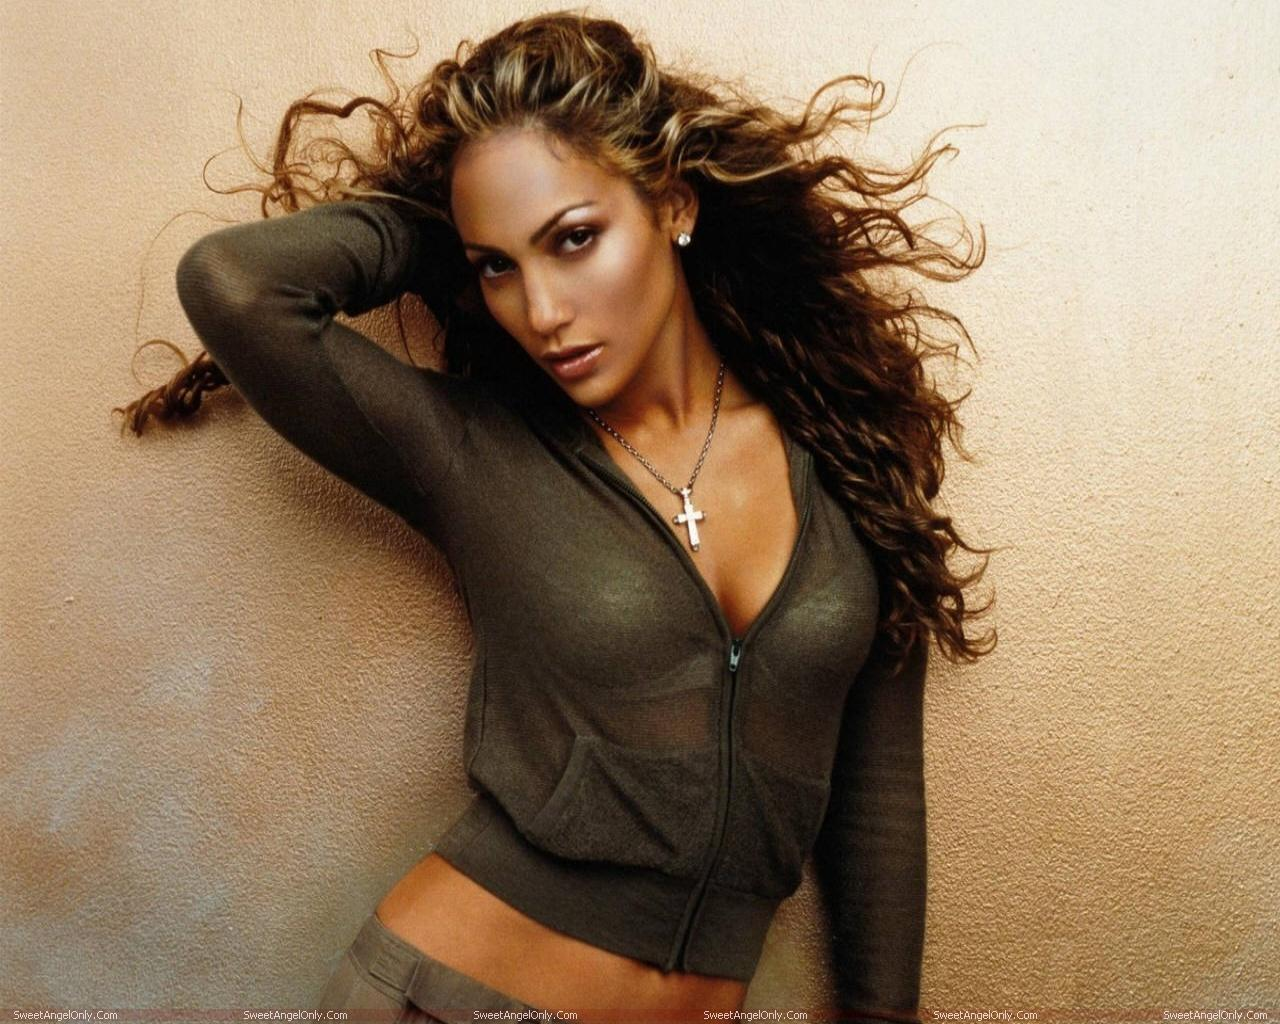 http://3.bp.blogspot.com/-VAbyvD5KhSI/TWz-s6hpdUI/AAAAAAAAEv4/wX5VSXXNrtw/s1600/actress_jennifer_lopez_hot_wallpapers_in_bikini_sweetangelonly_22.jpg